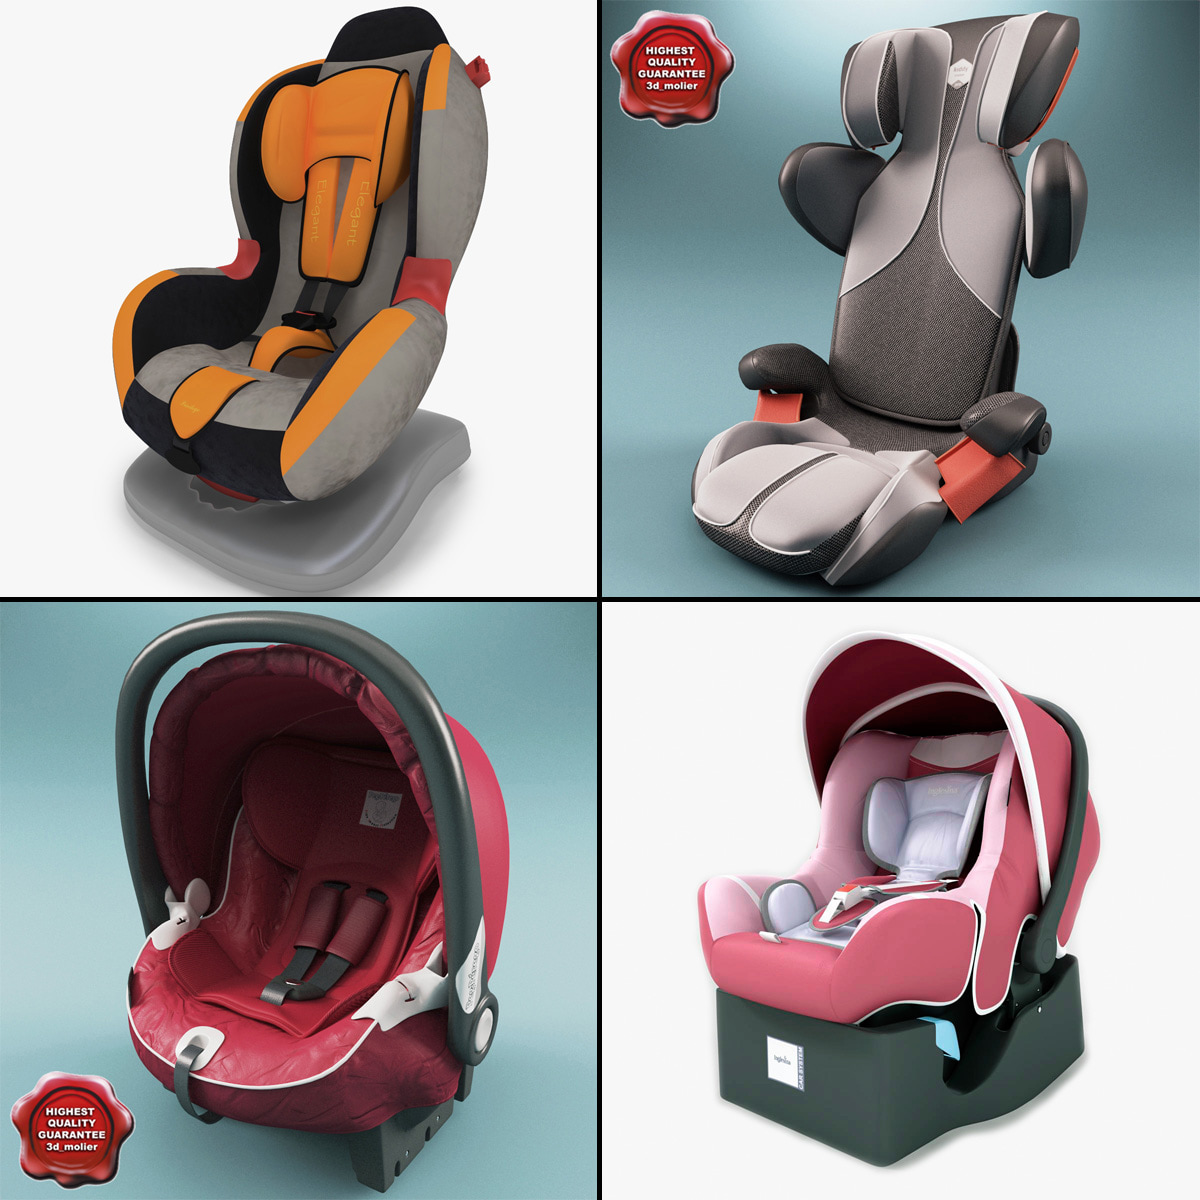 Kiddy_Car_Seats_Collection_V3_000.jpg